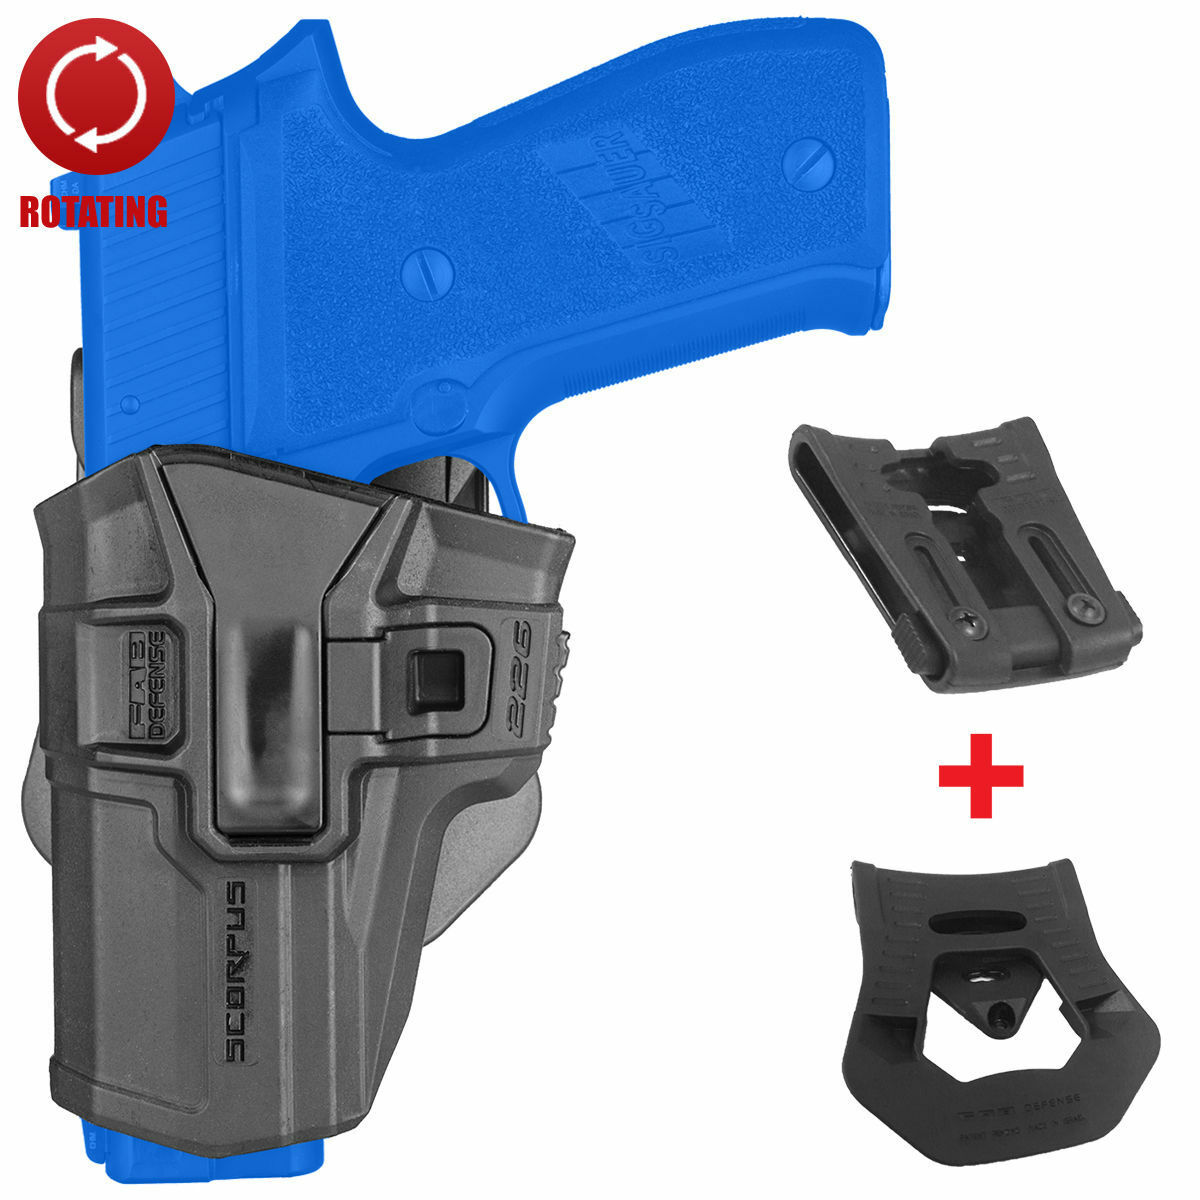 FAB Defense Level 1 redo LEFT Holster w  Swivel  for Sig Sauer P226 - 226 S LH